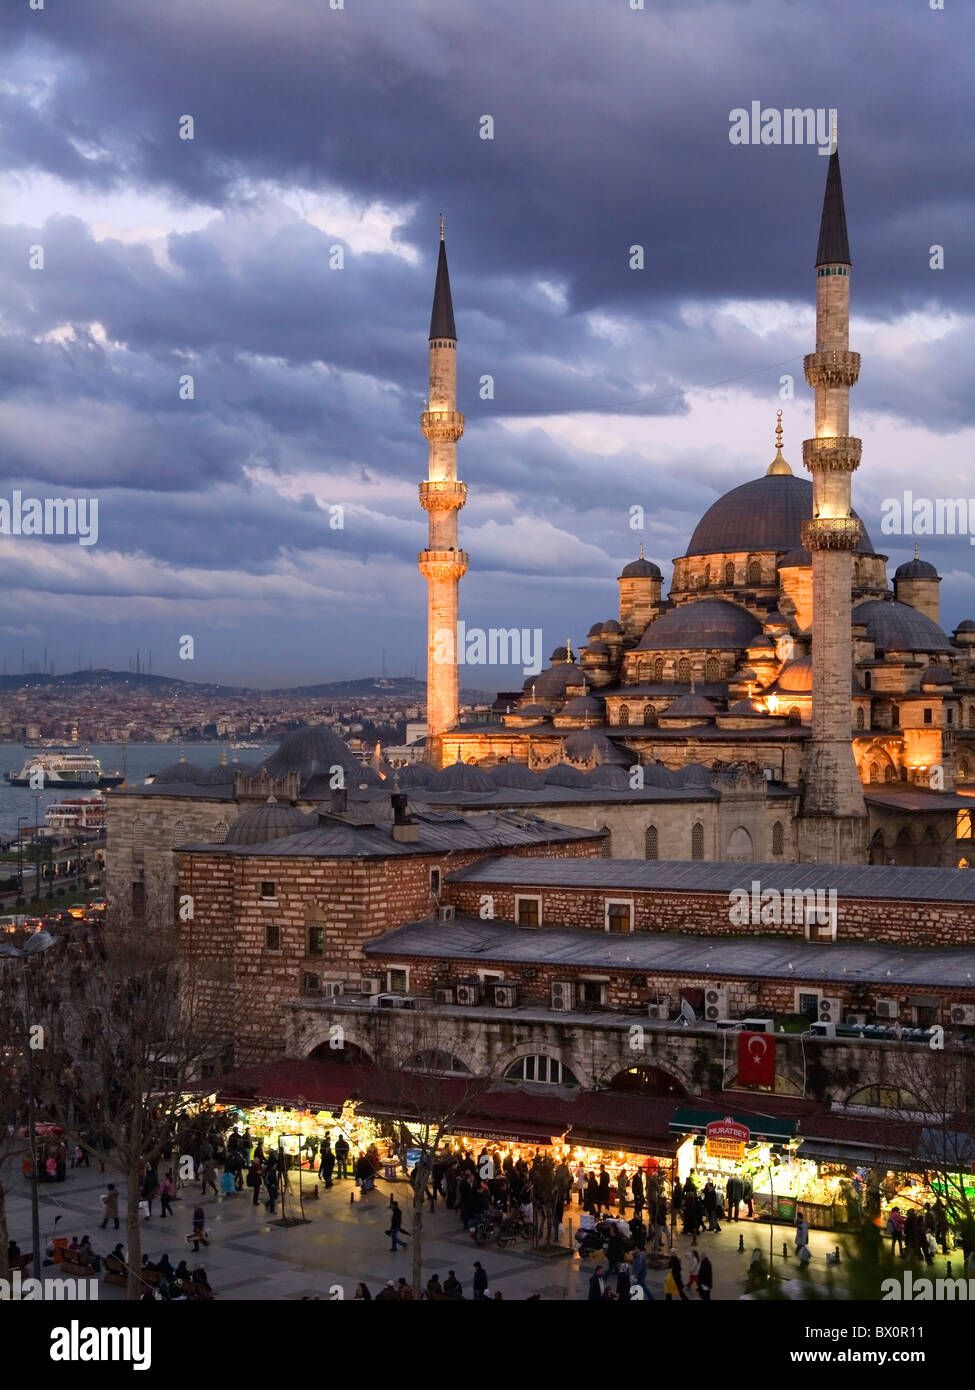 The Yeni Mosque, New Mosque or Mosque of the Valide Sultan. Istanbul, Turkey - Stock Image